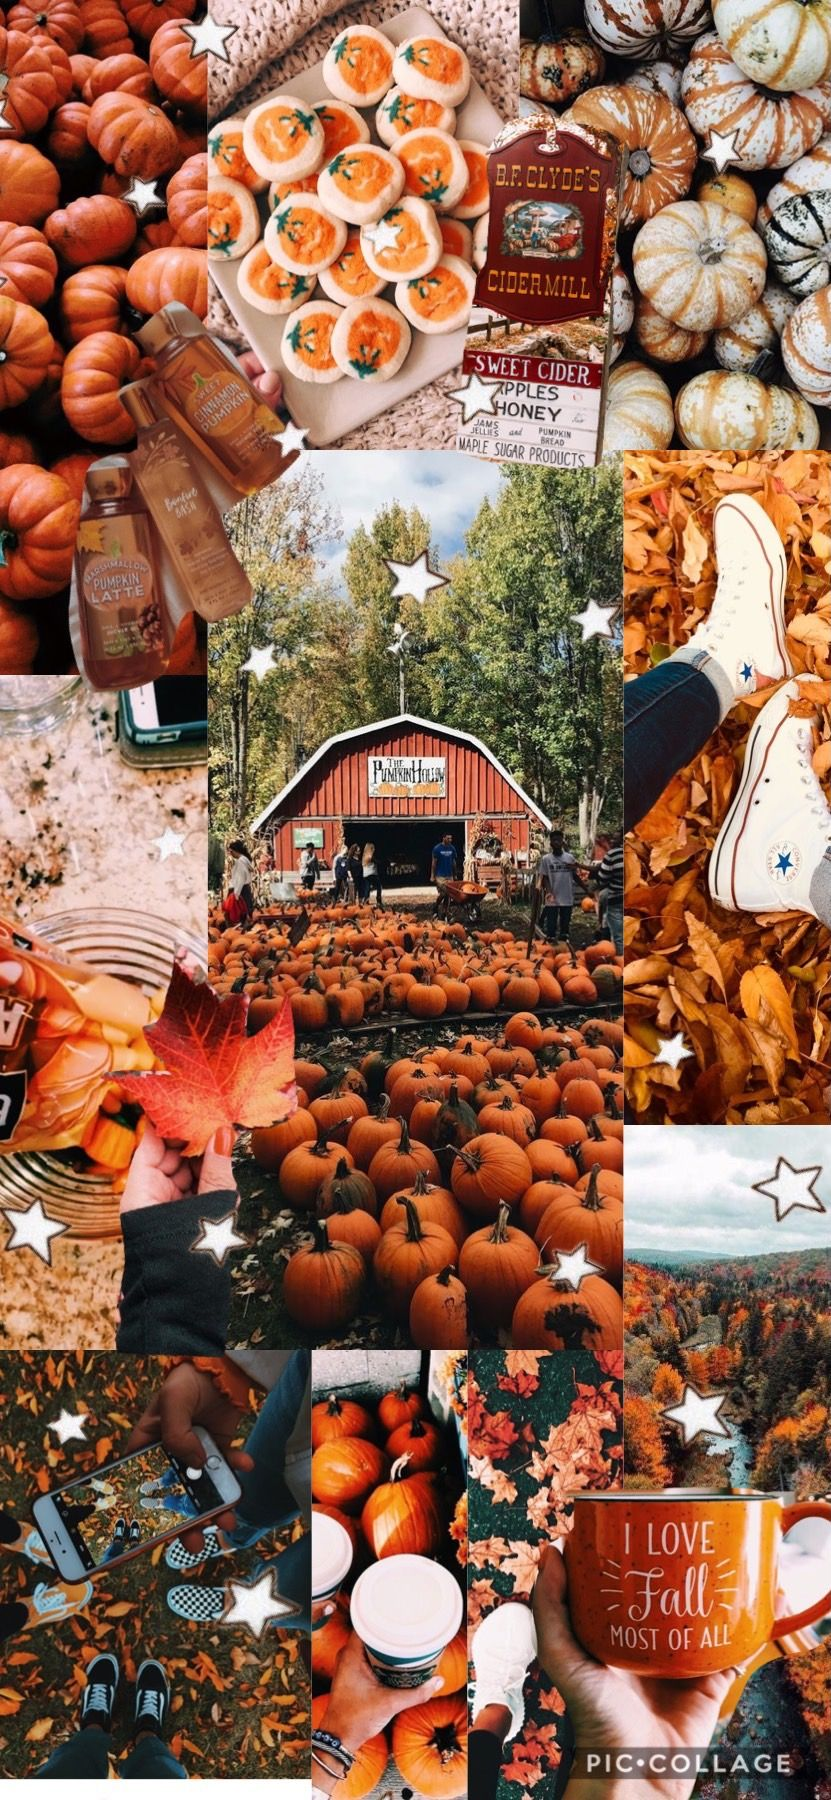 Fall Collage Keira Droney Fall Collage Autumn Wallpaper Lockscreen Phone Fall Wallpaper Cute Fall Wallpaper Fall Halloween Decor